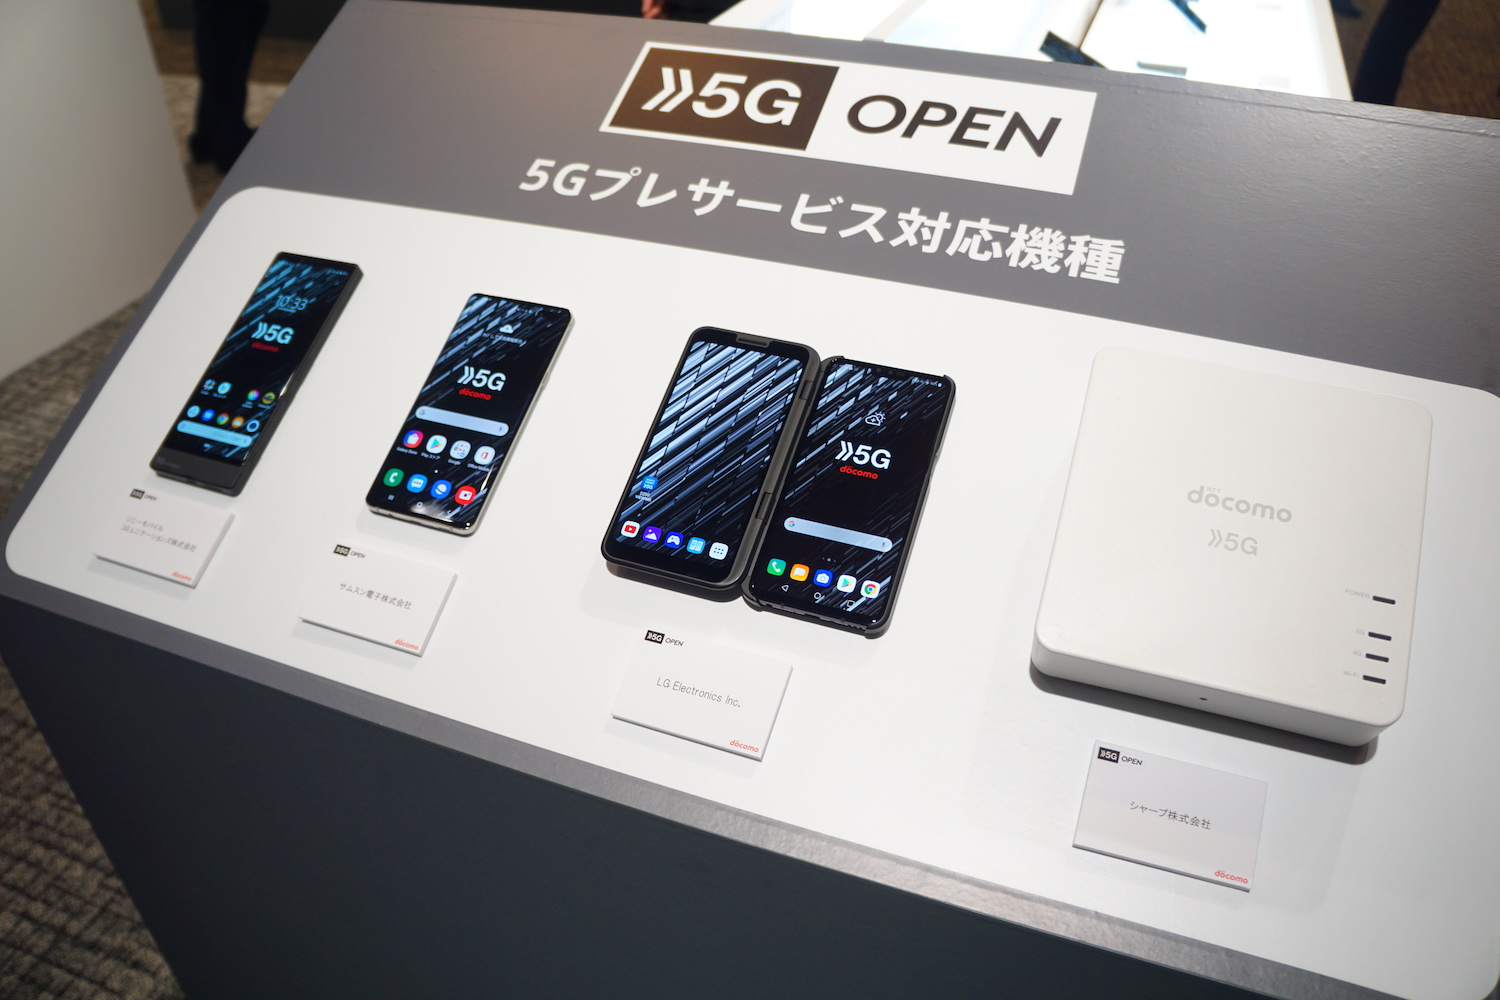 ドコモ、下り最大3.2Gbpsの「5Gプレサービス」を20日から開始。試作機も公開